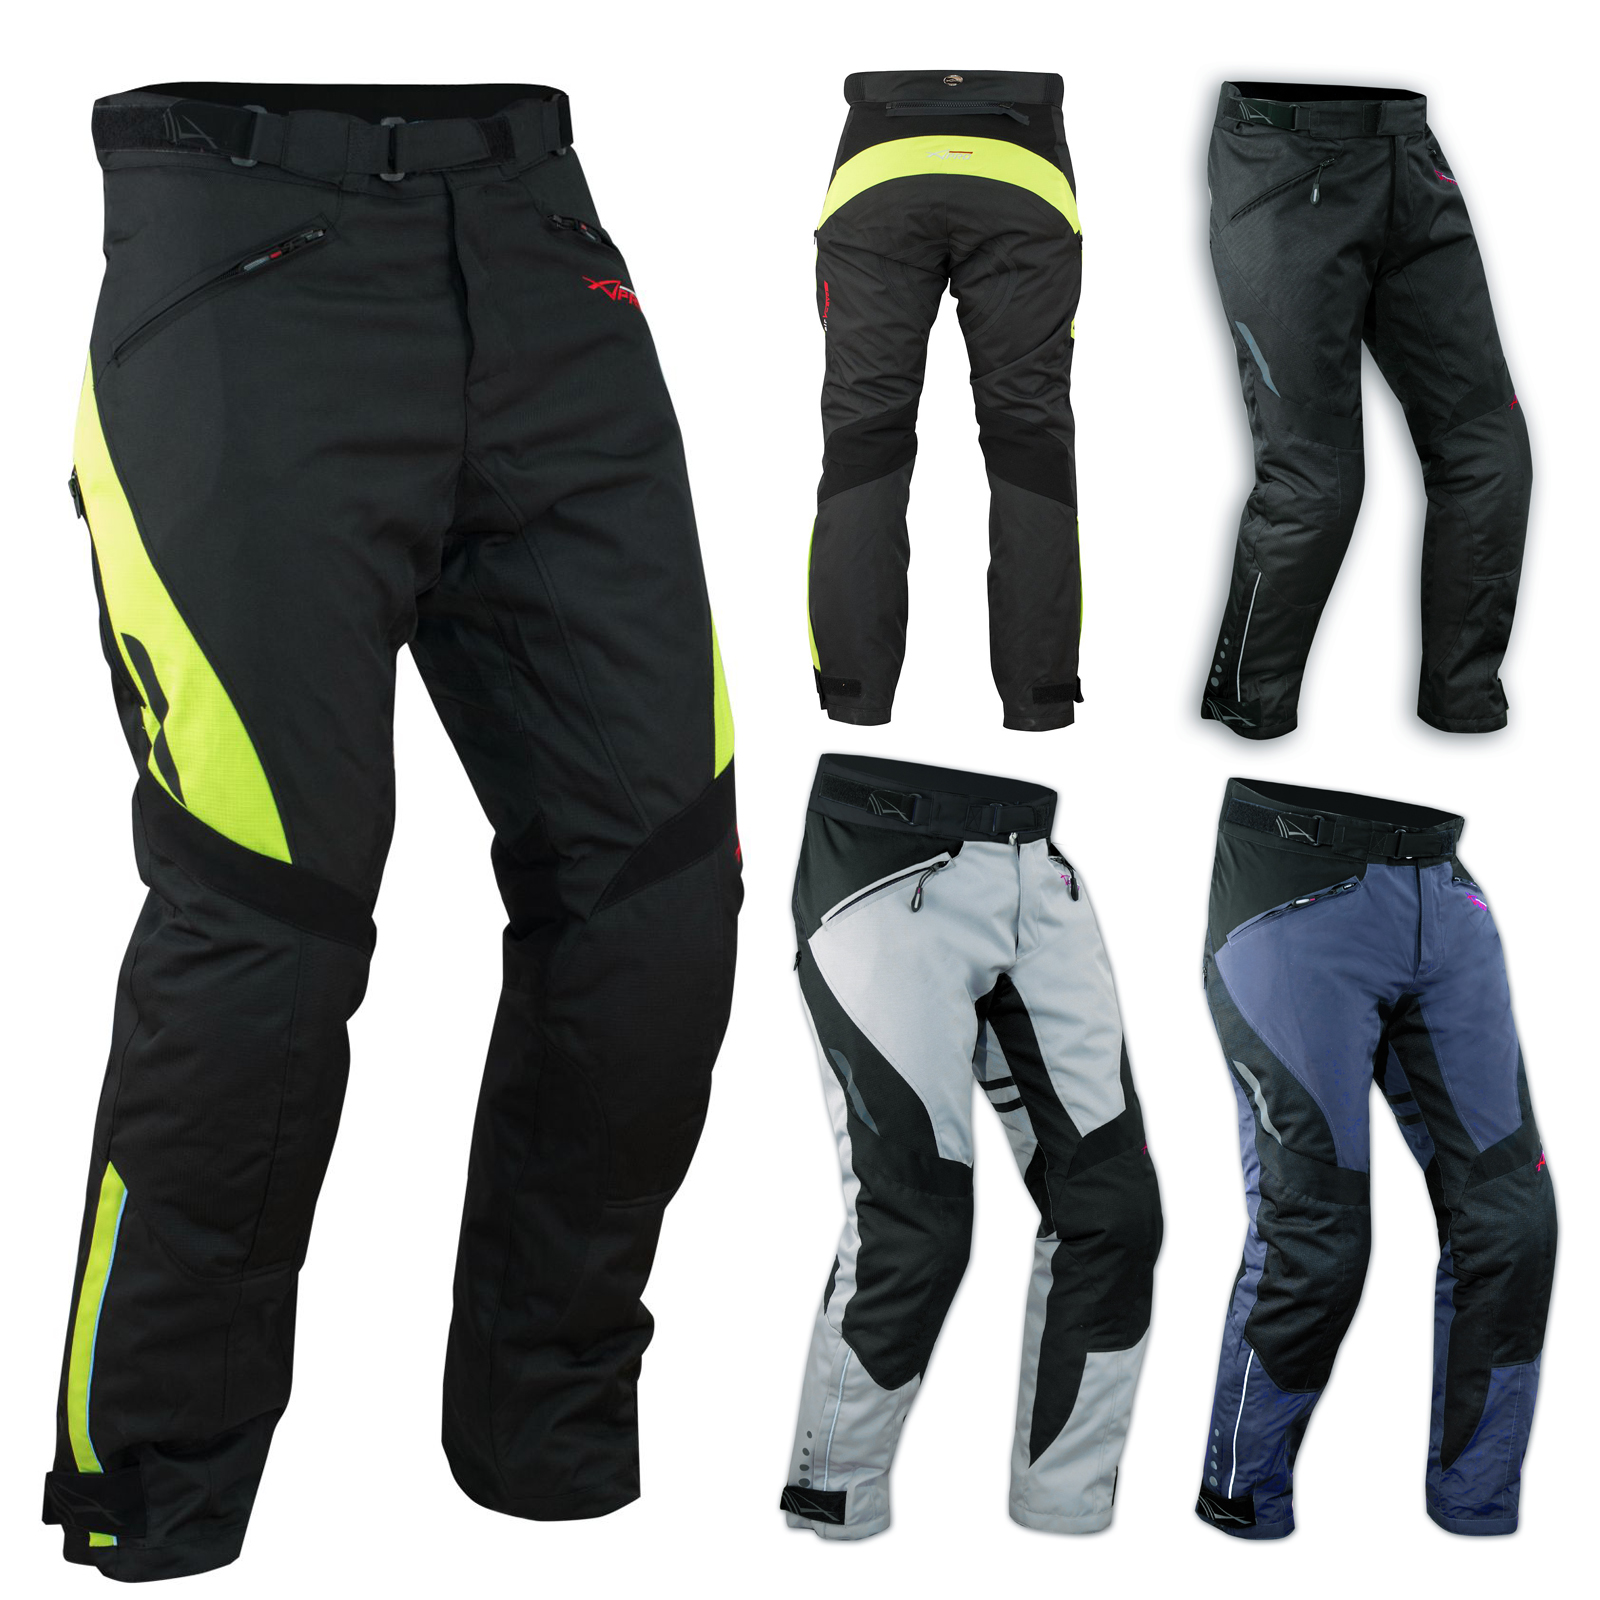 pantalon impermeable homme protections ce thermique motard reflechissant moto ebay. Black Bedroom Furniture Sets. Home Design Ideas